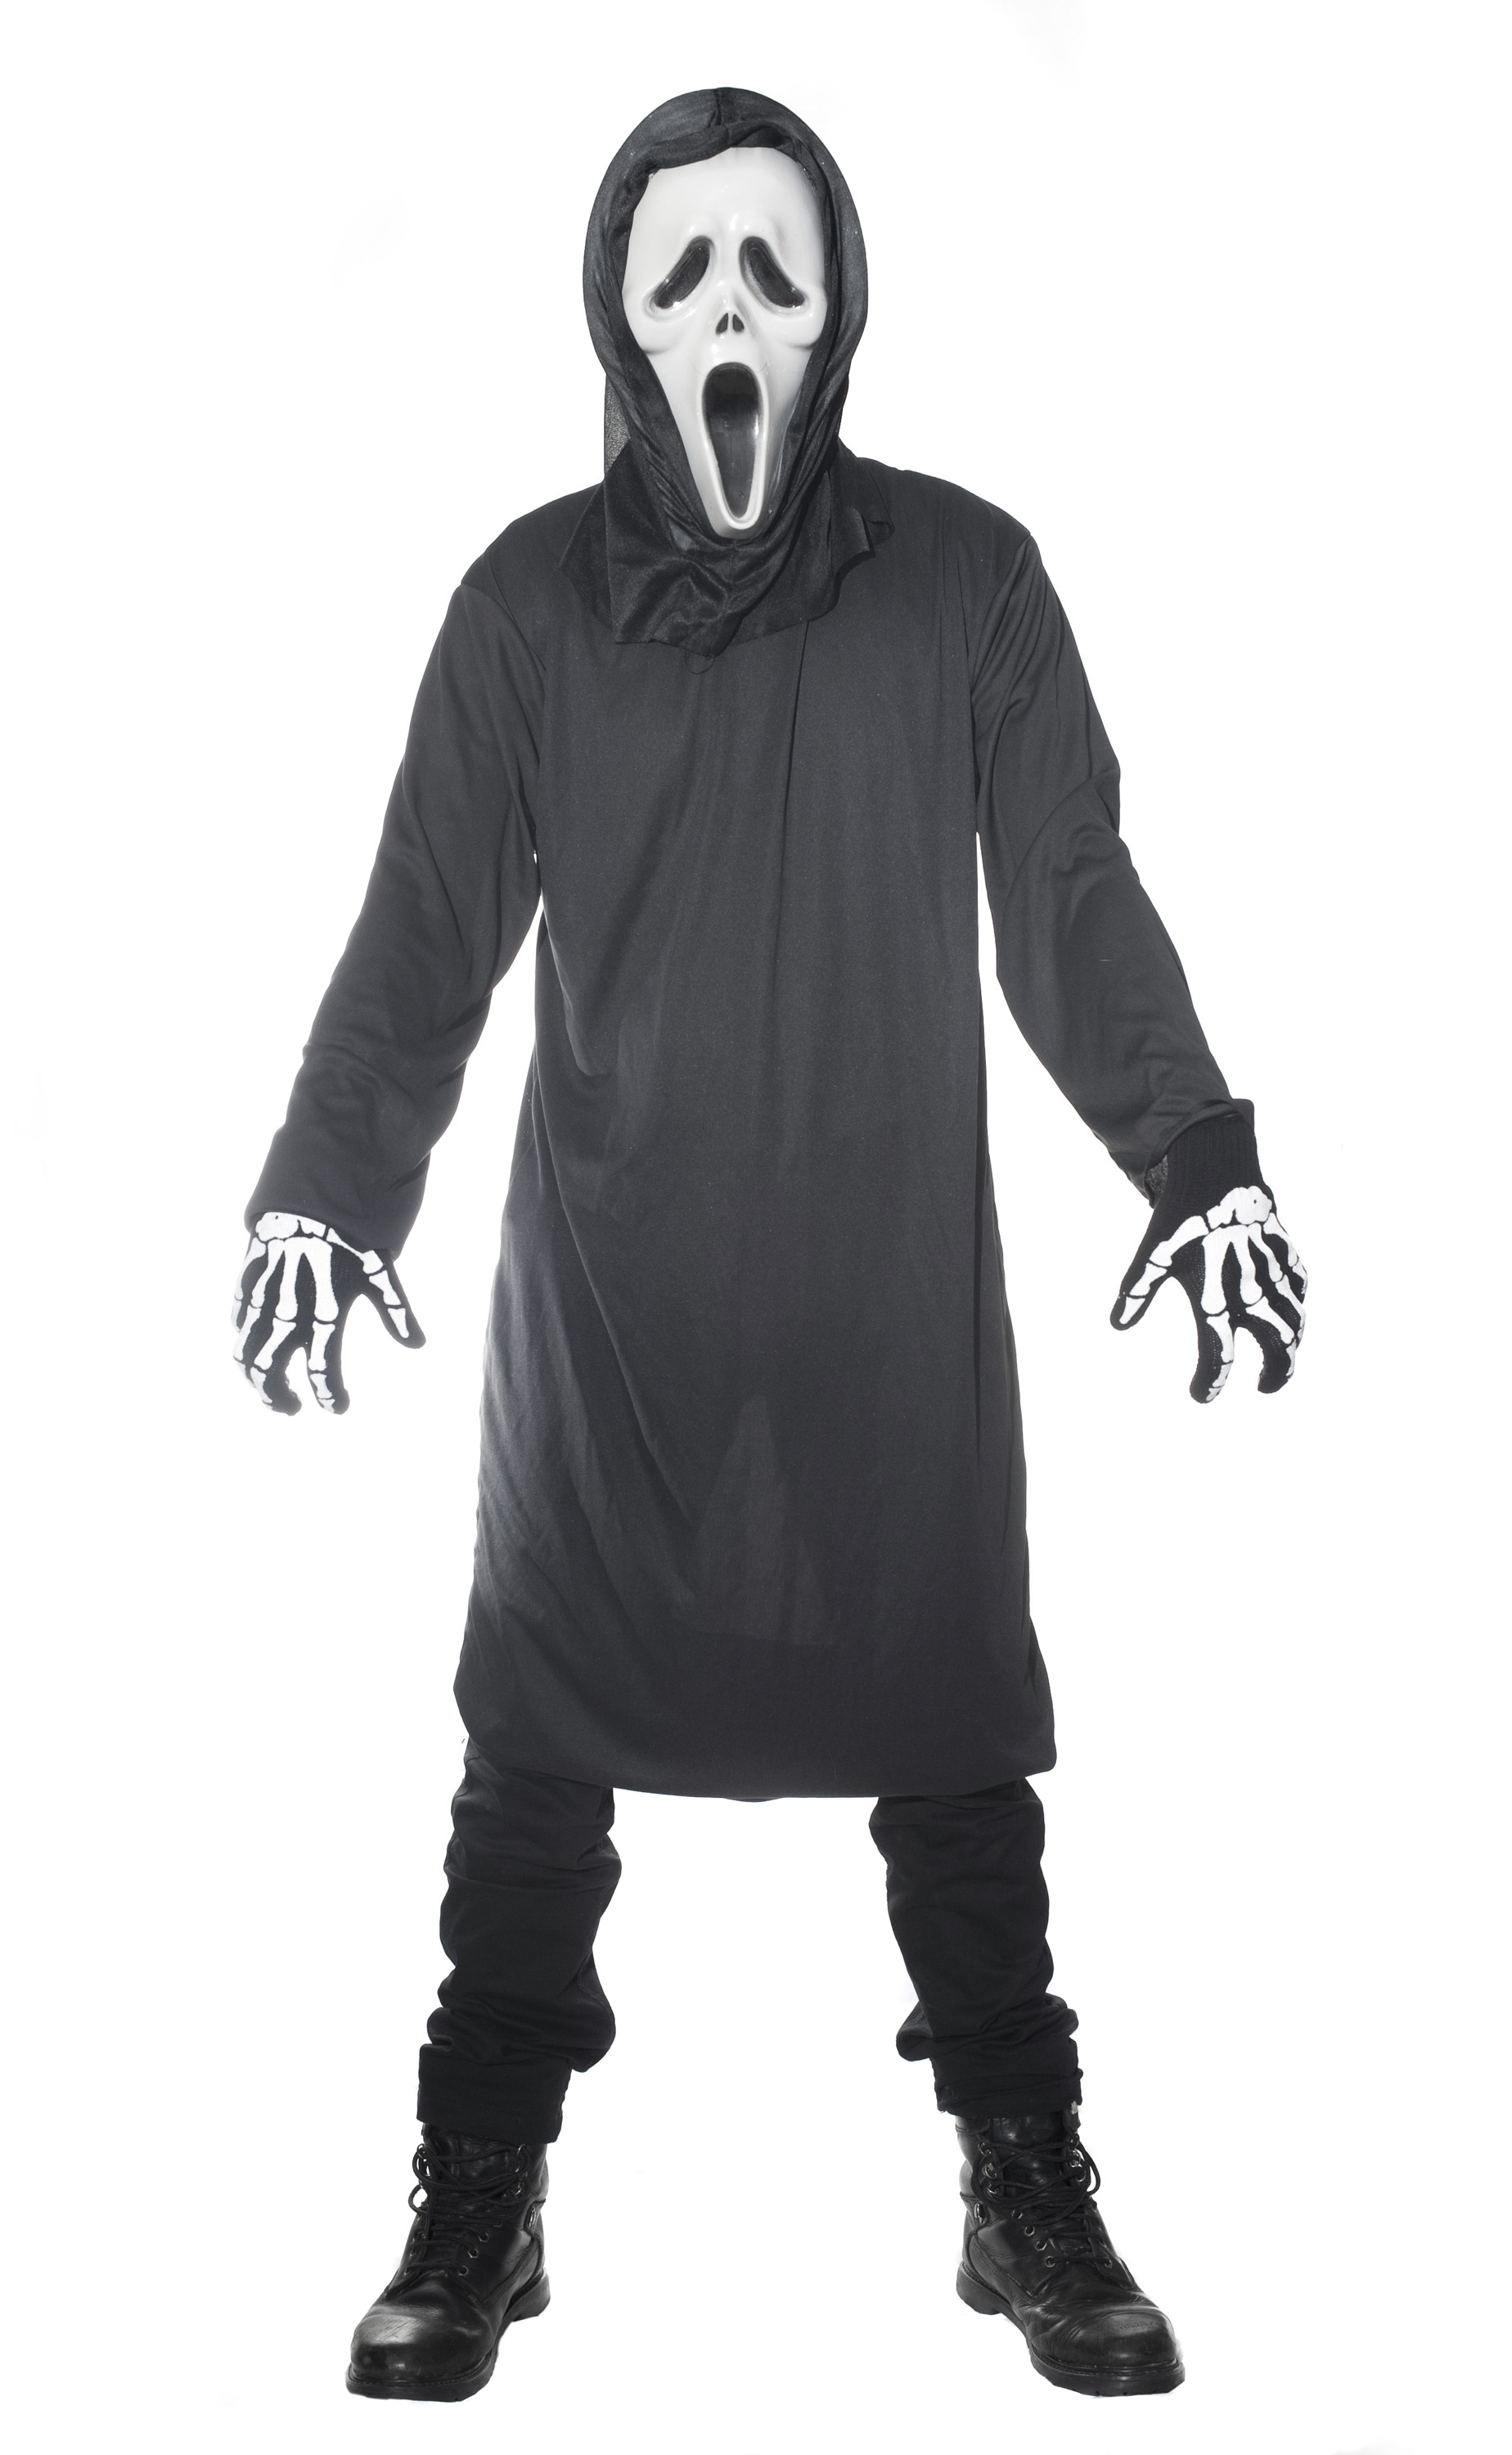 black halloween party costume with a scream ghostface mask